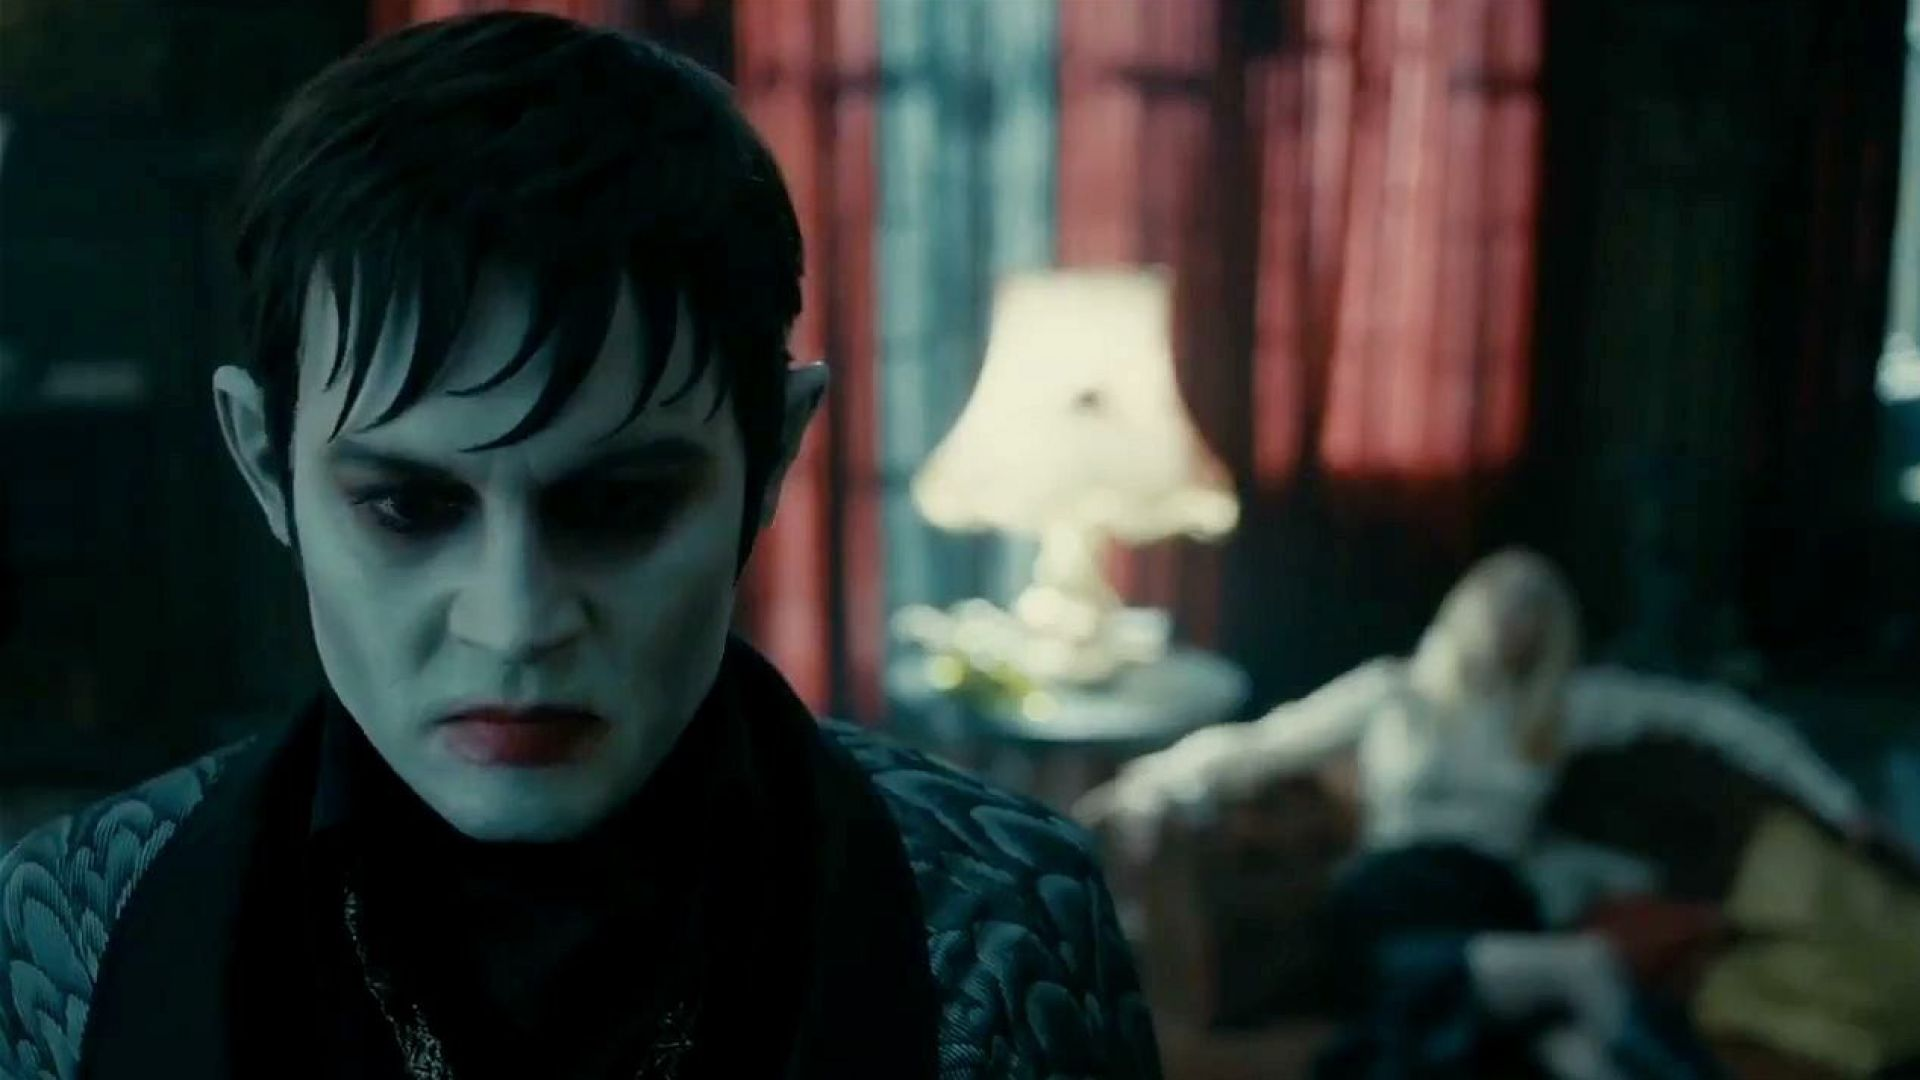 And do the people of Collinsport know that Angie is a whore of Beelzebub? Dark Shadows